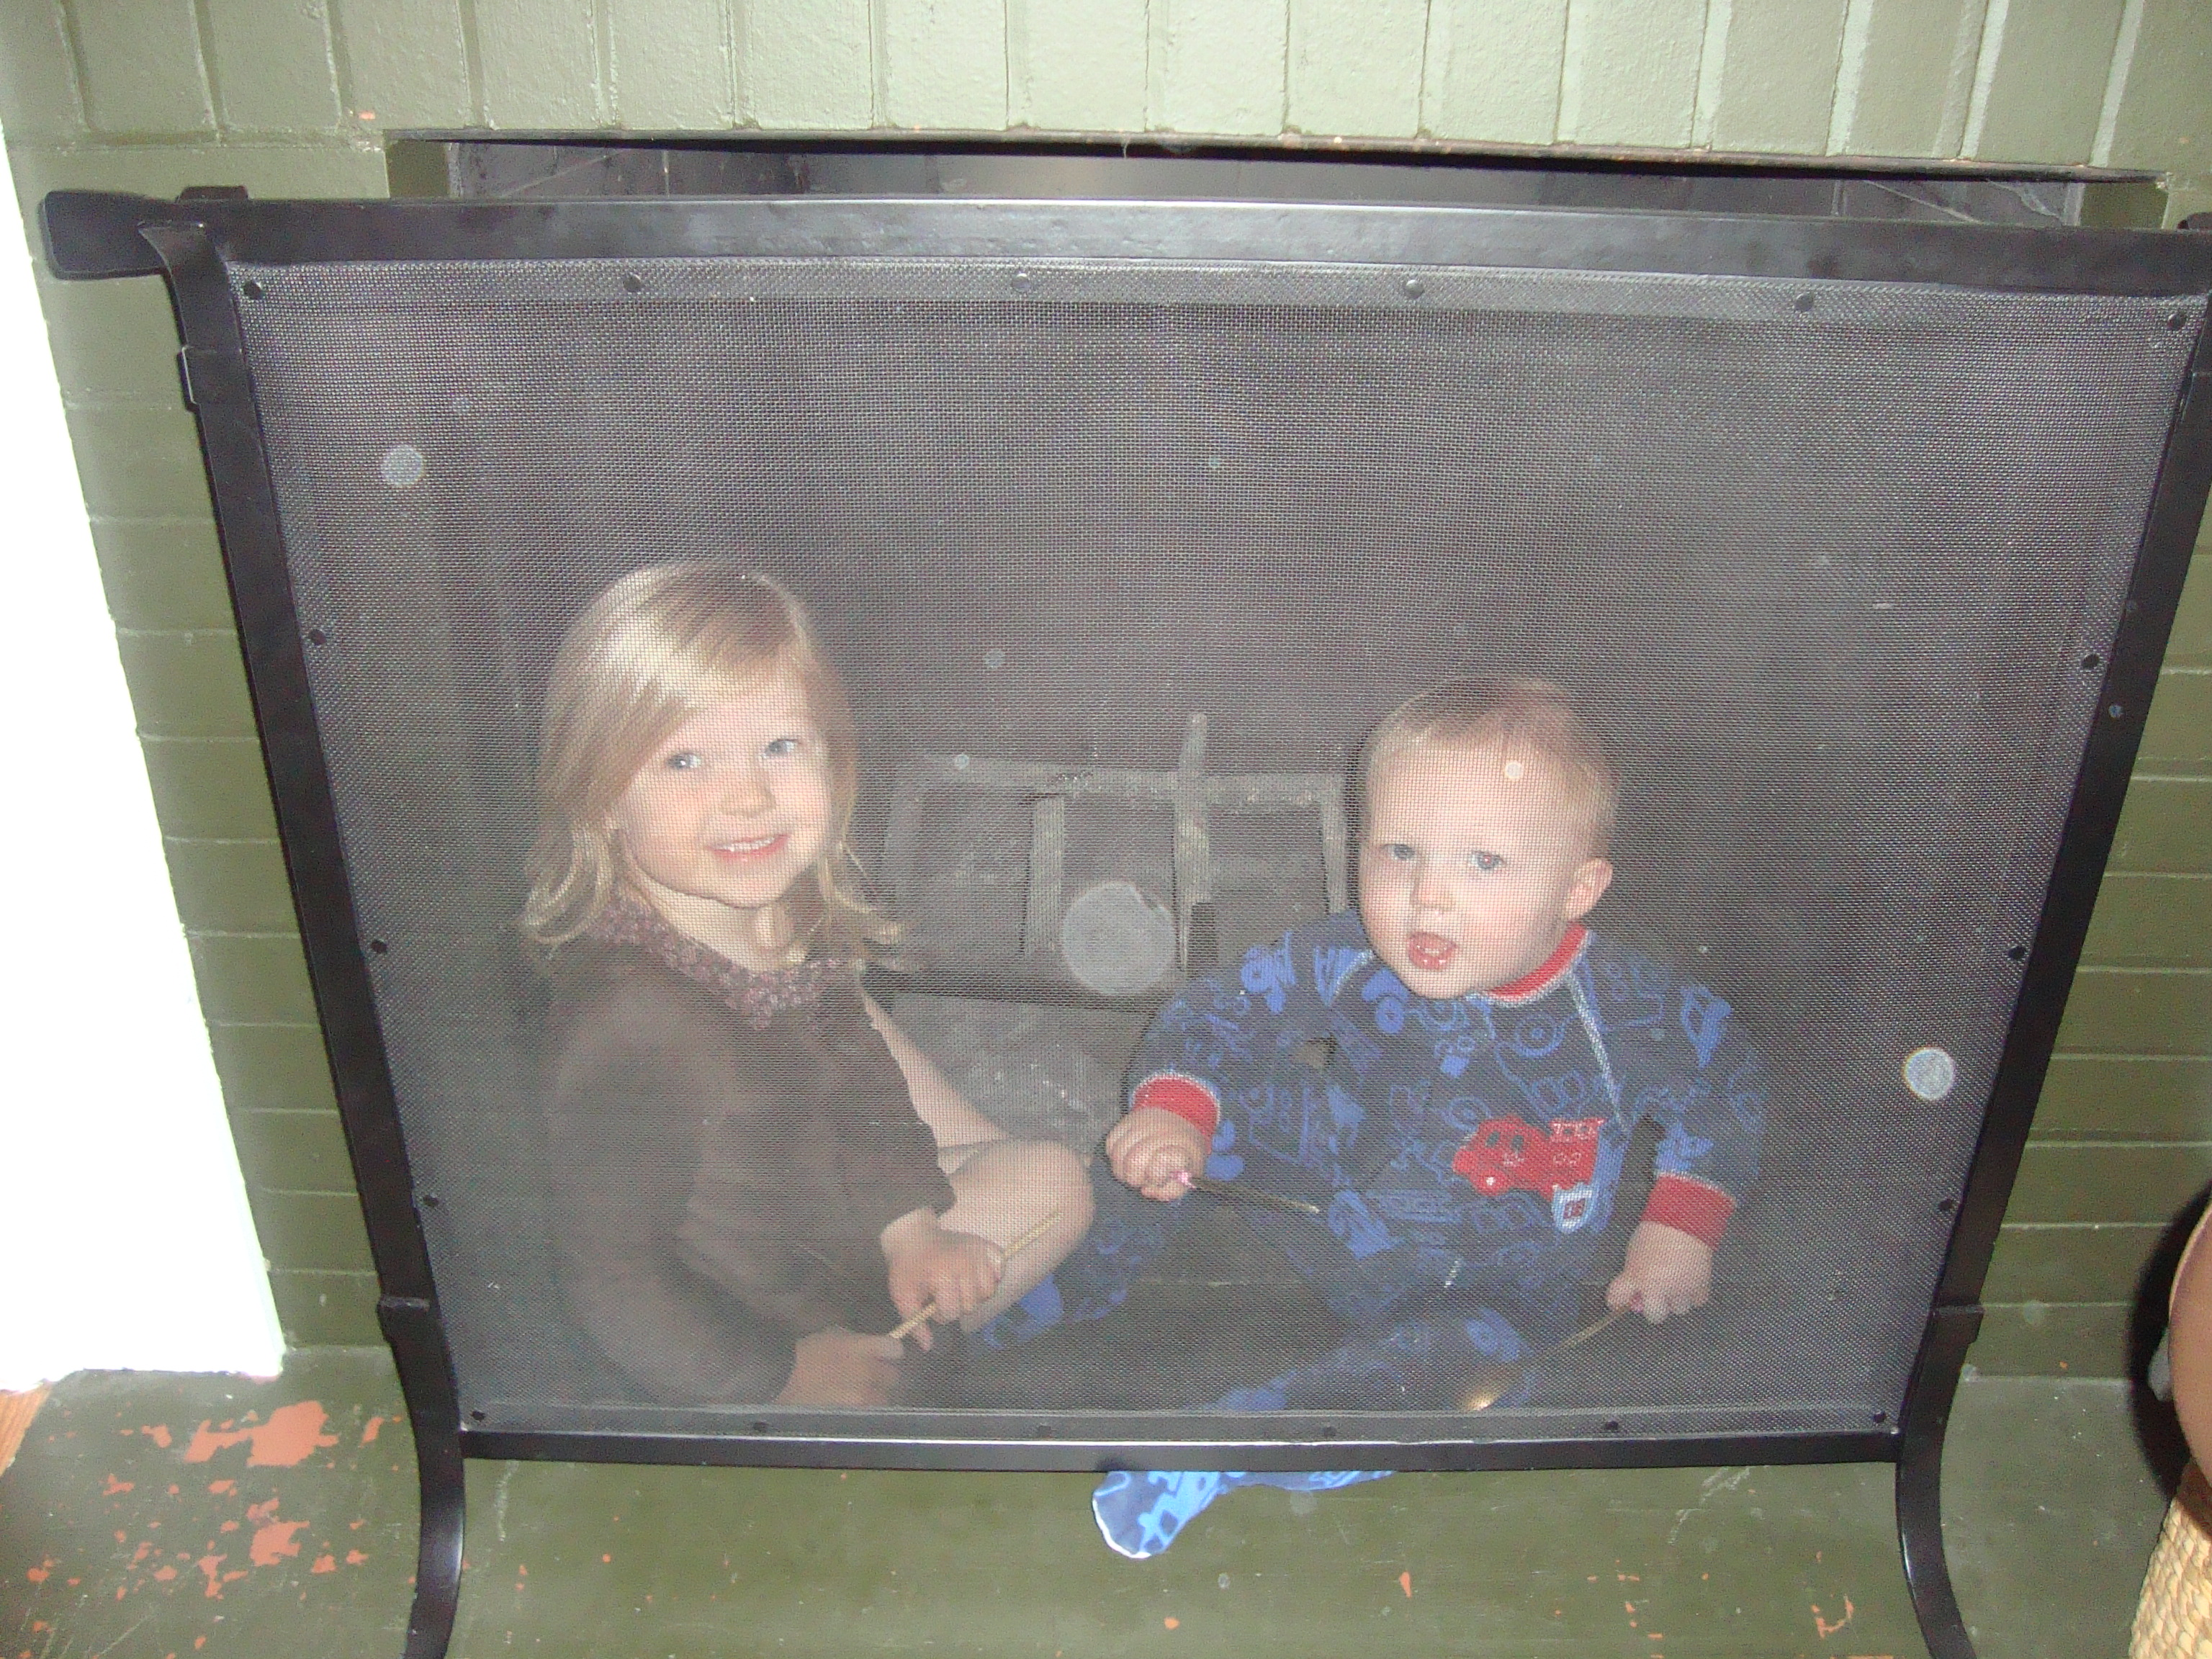 A new hiding place! (thank goodness for the flash or else you wouldn't have even seen them!)